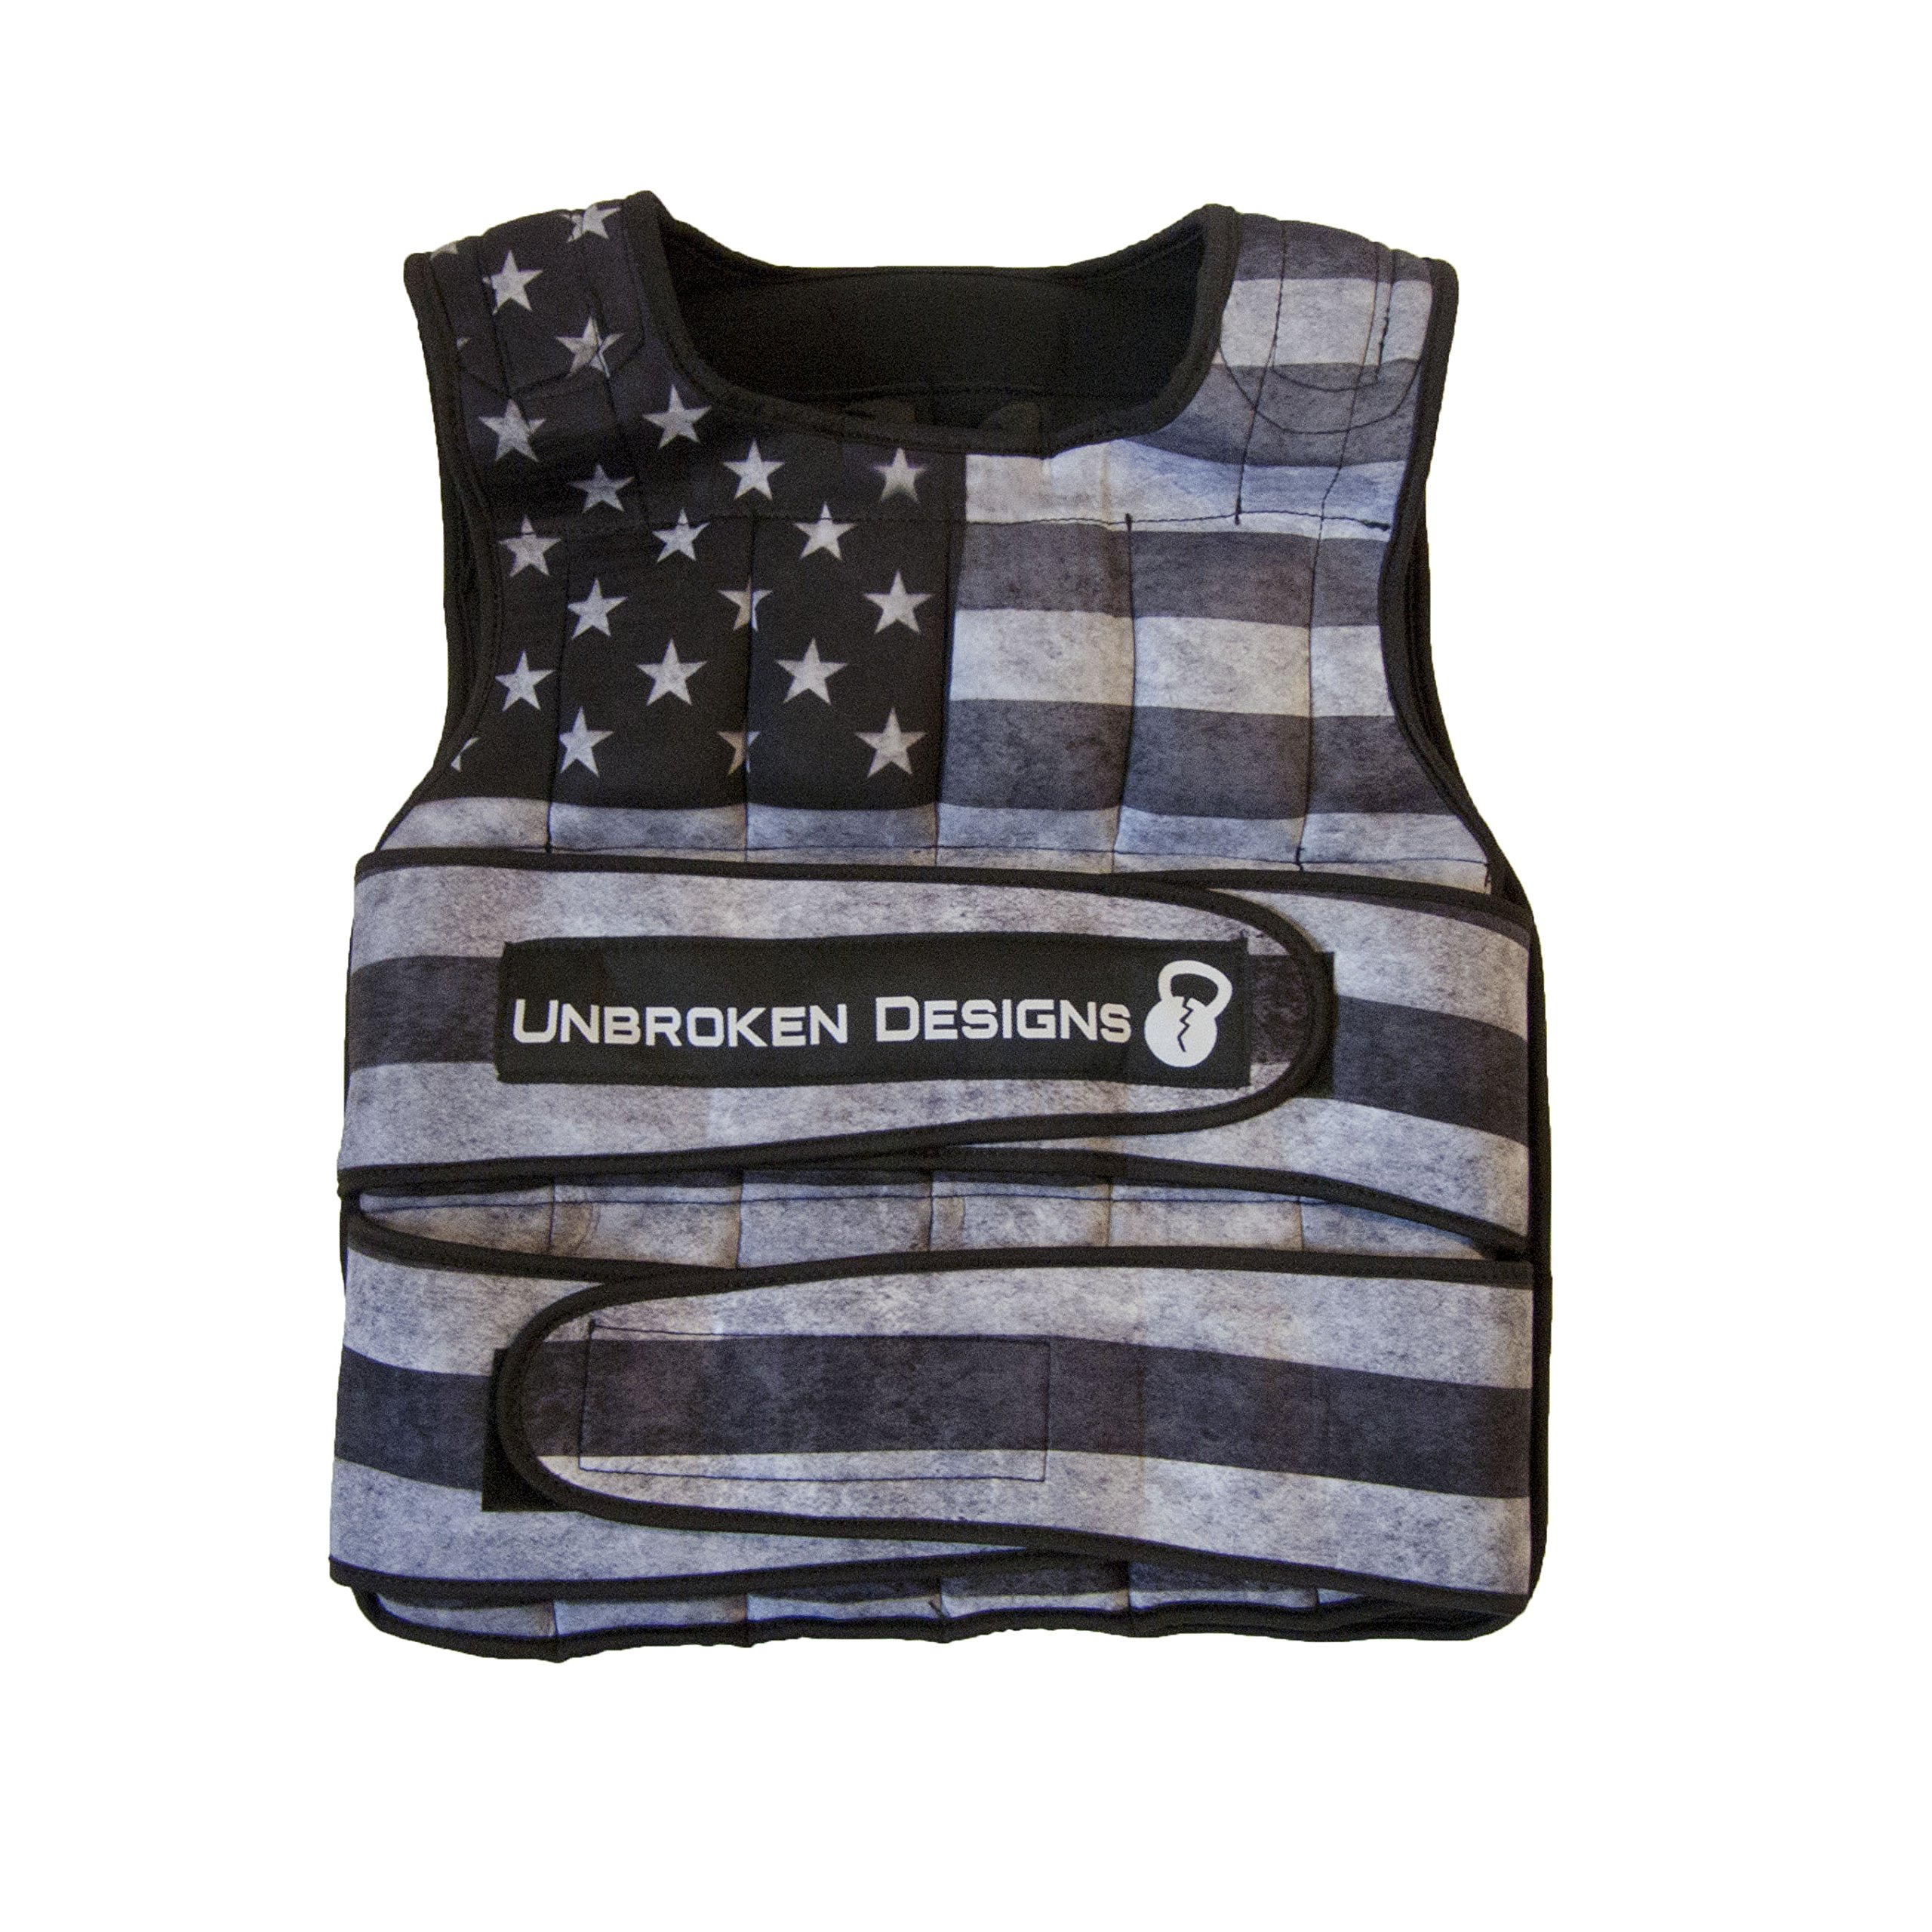 Unisex 40lbs Star and Stripes Weight Vest-Adjustable Weight Jacket for Resistance Training, Neoprene Weight Vest, Boxing Training Fitness, Shapewear and Tummy Controller, Weight Closure